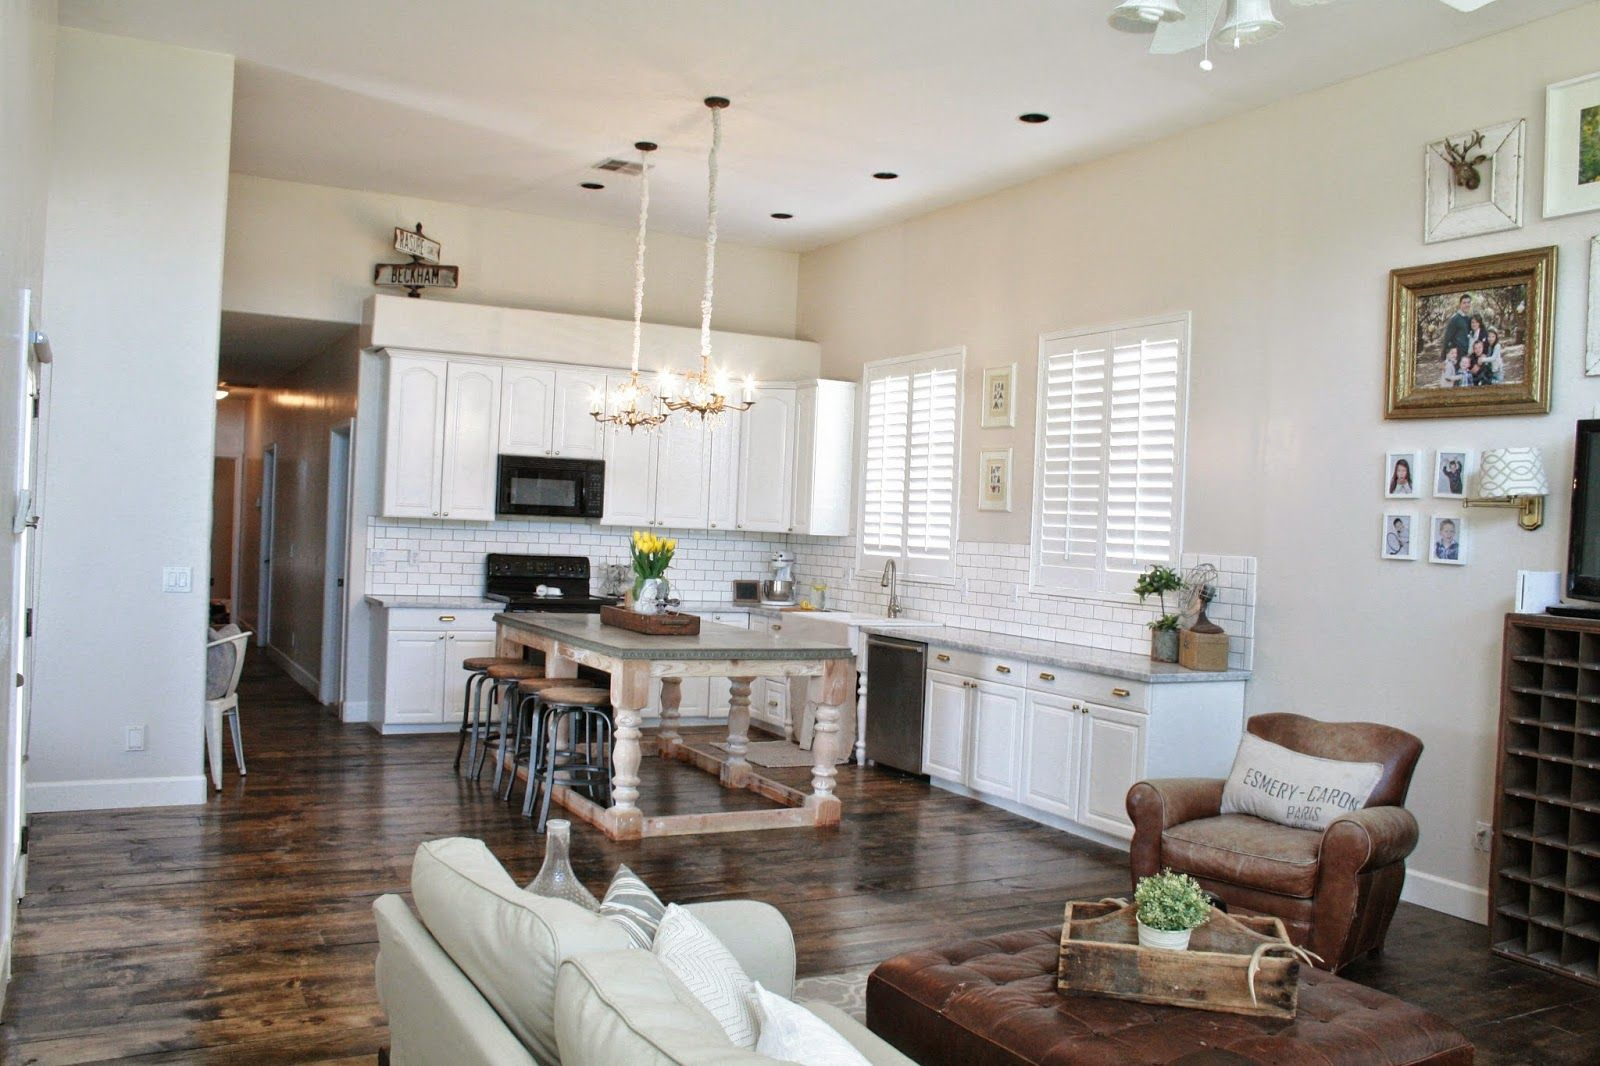 Grand Design Inexpensive DIY Kitchen  Floors And Island. Part 85